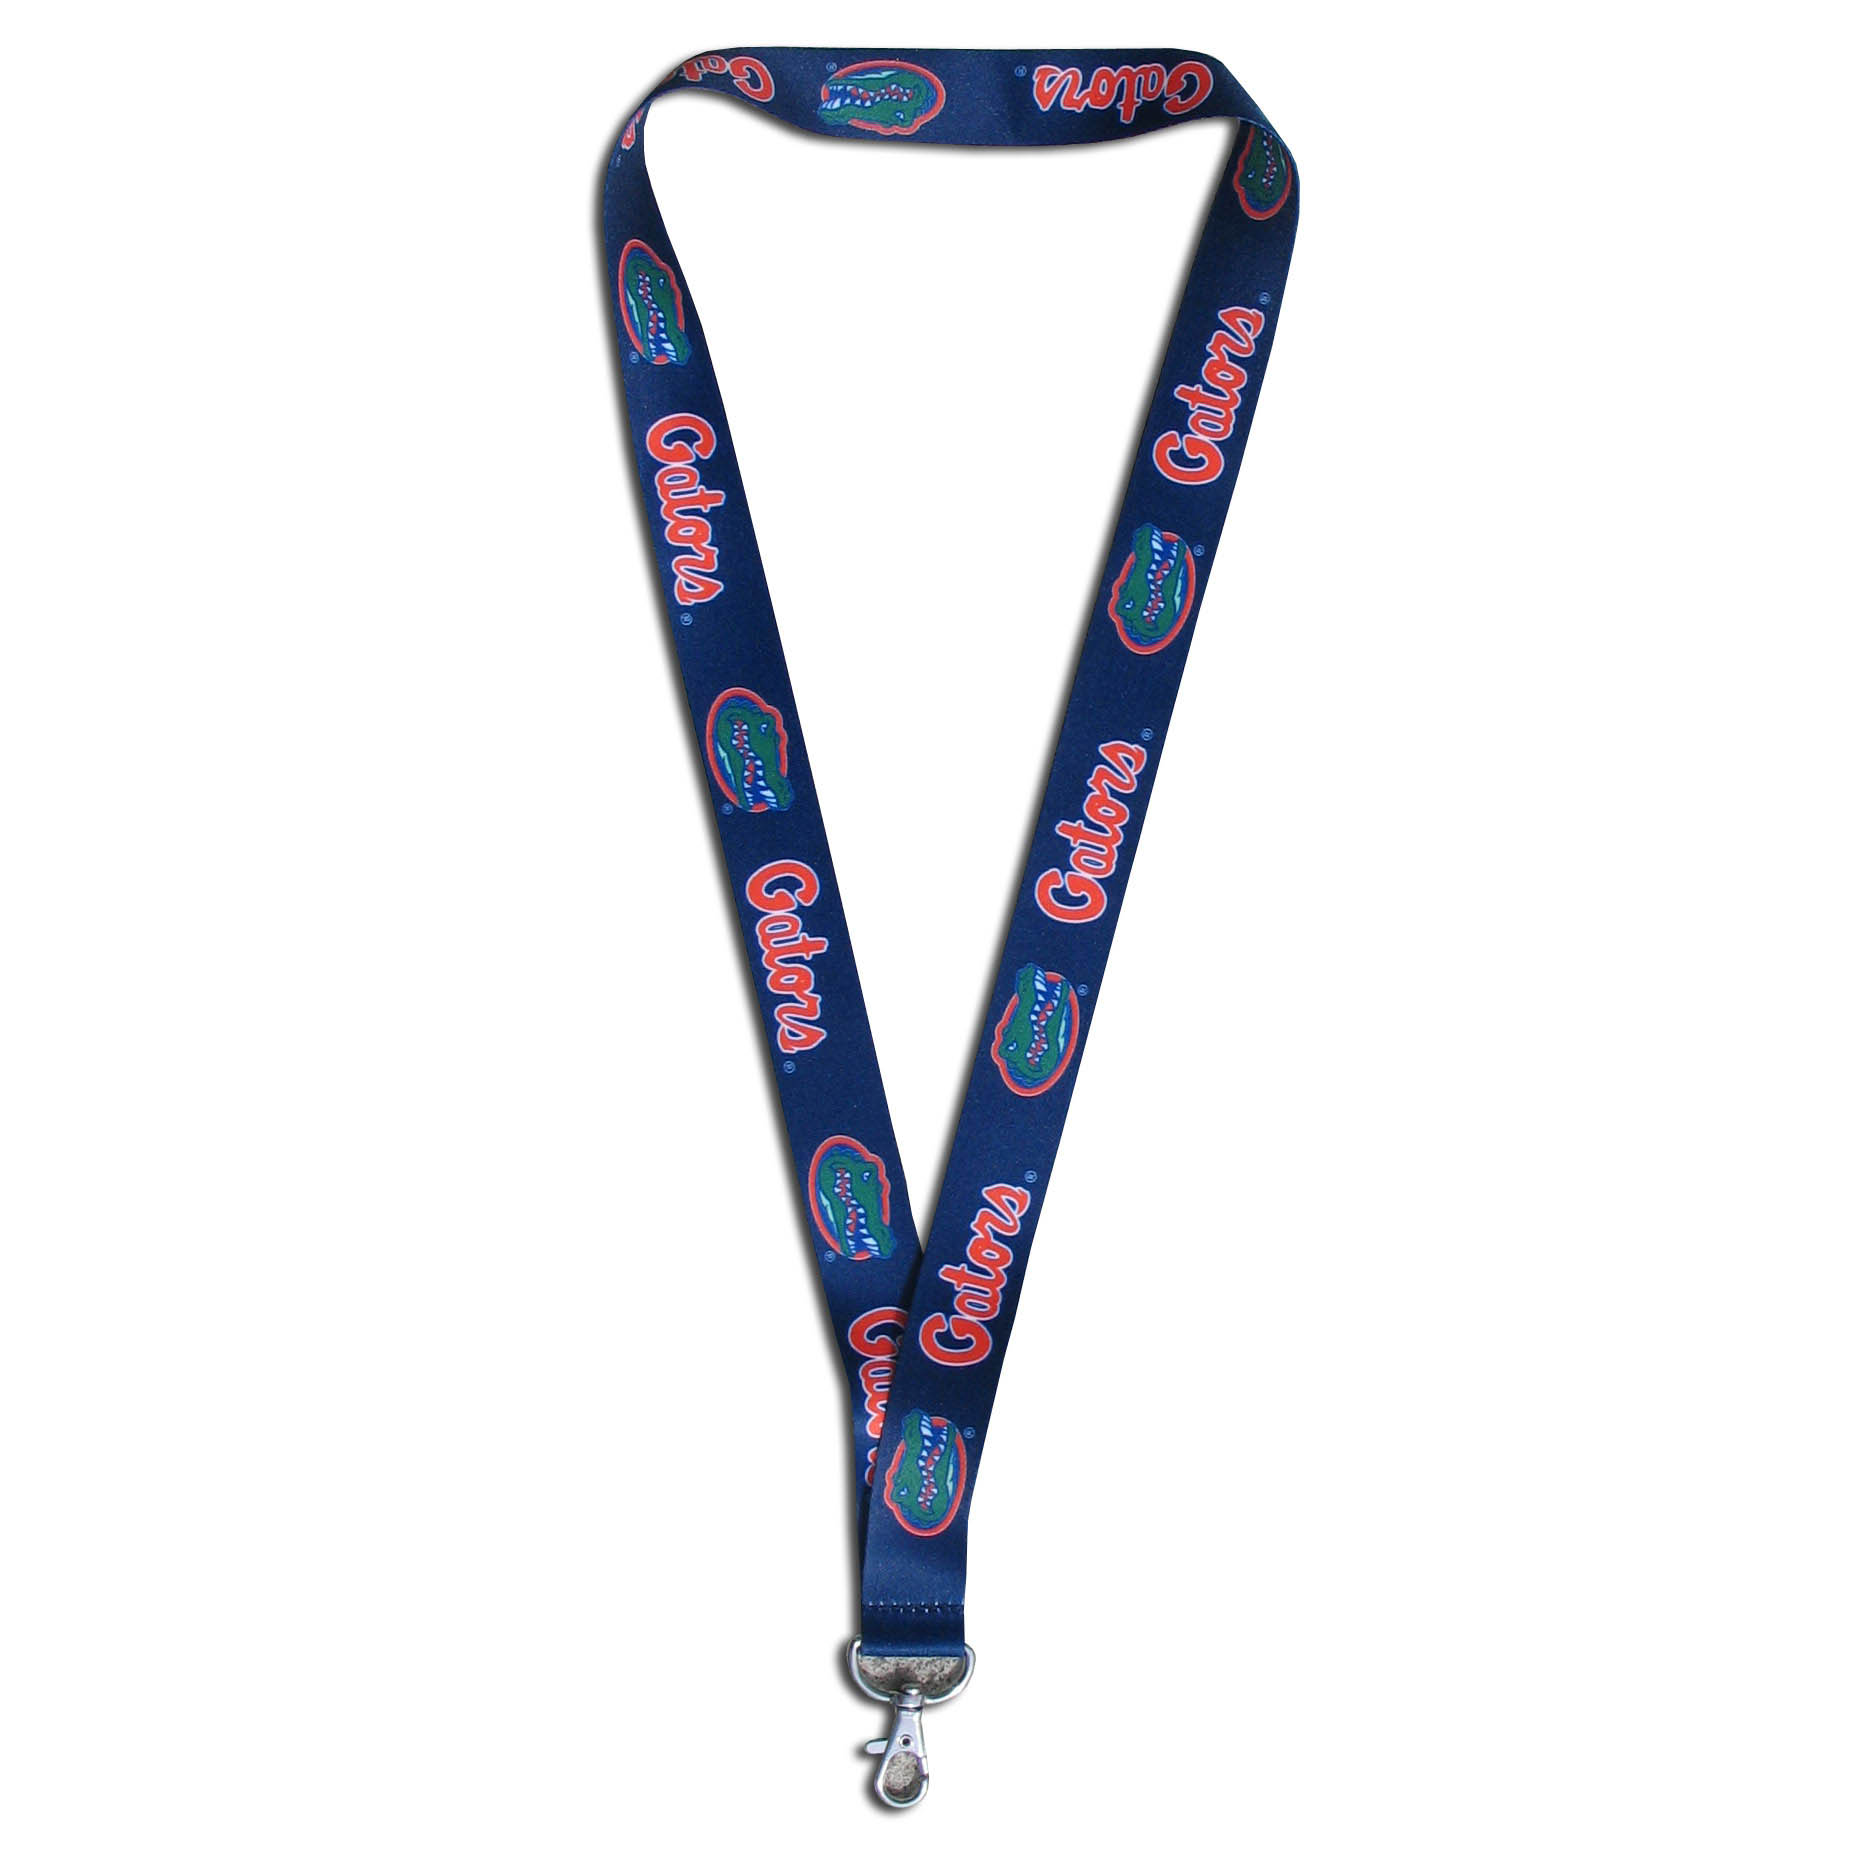 Florida Gators Lanyard - Our Florida Gators lanyards are a great way to show off your school pride and keep track of your keys, ID's, badges and much more. The lanyards are made of a comfortable nylon with screen printed school logos. They feature safety closures that disconnect if the lanyard becomes caught on something.